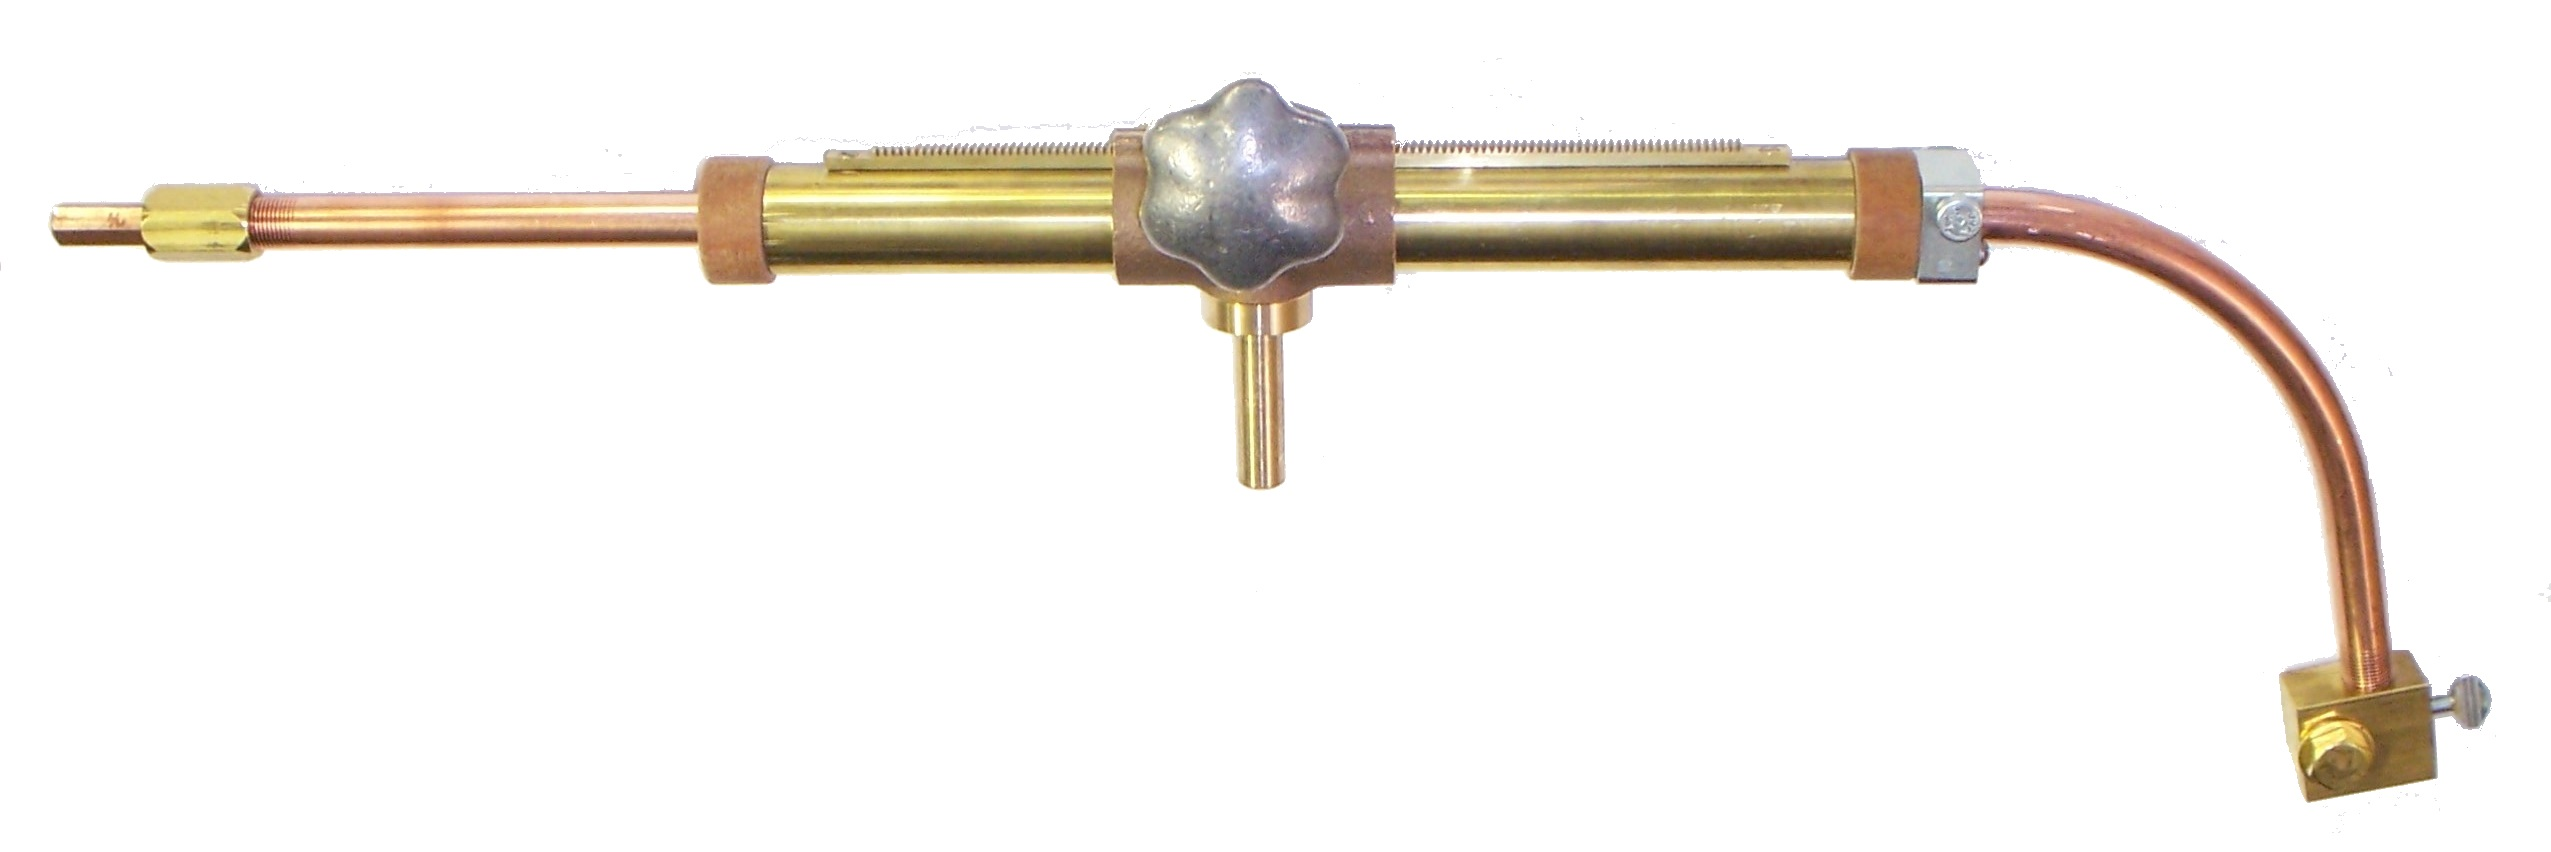 "48-130-1 10"" Adjustable with 32"" curved nozzle"